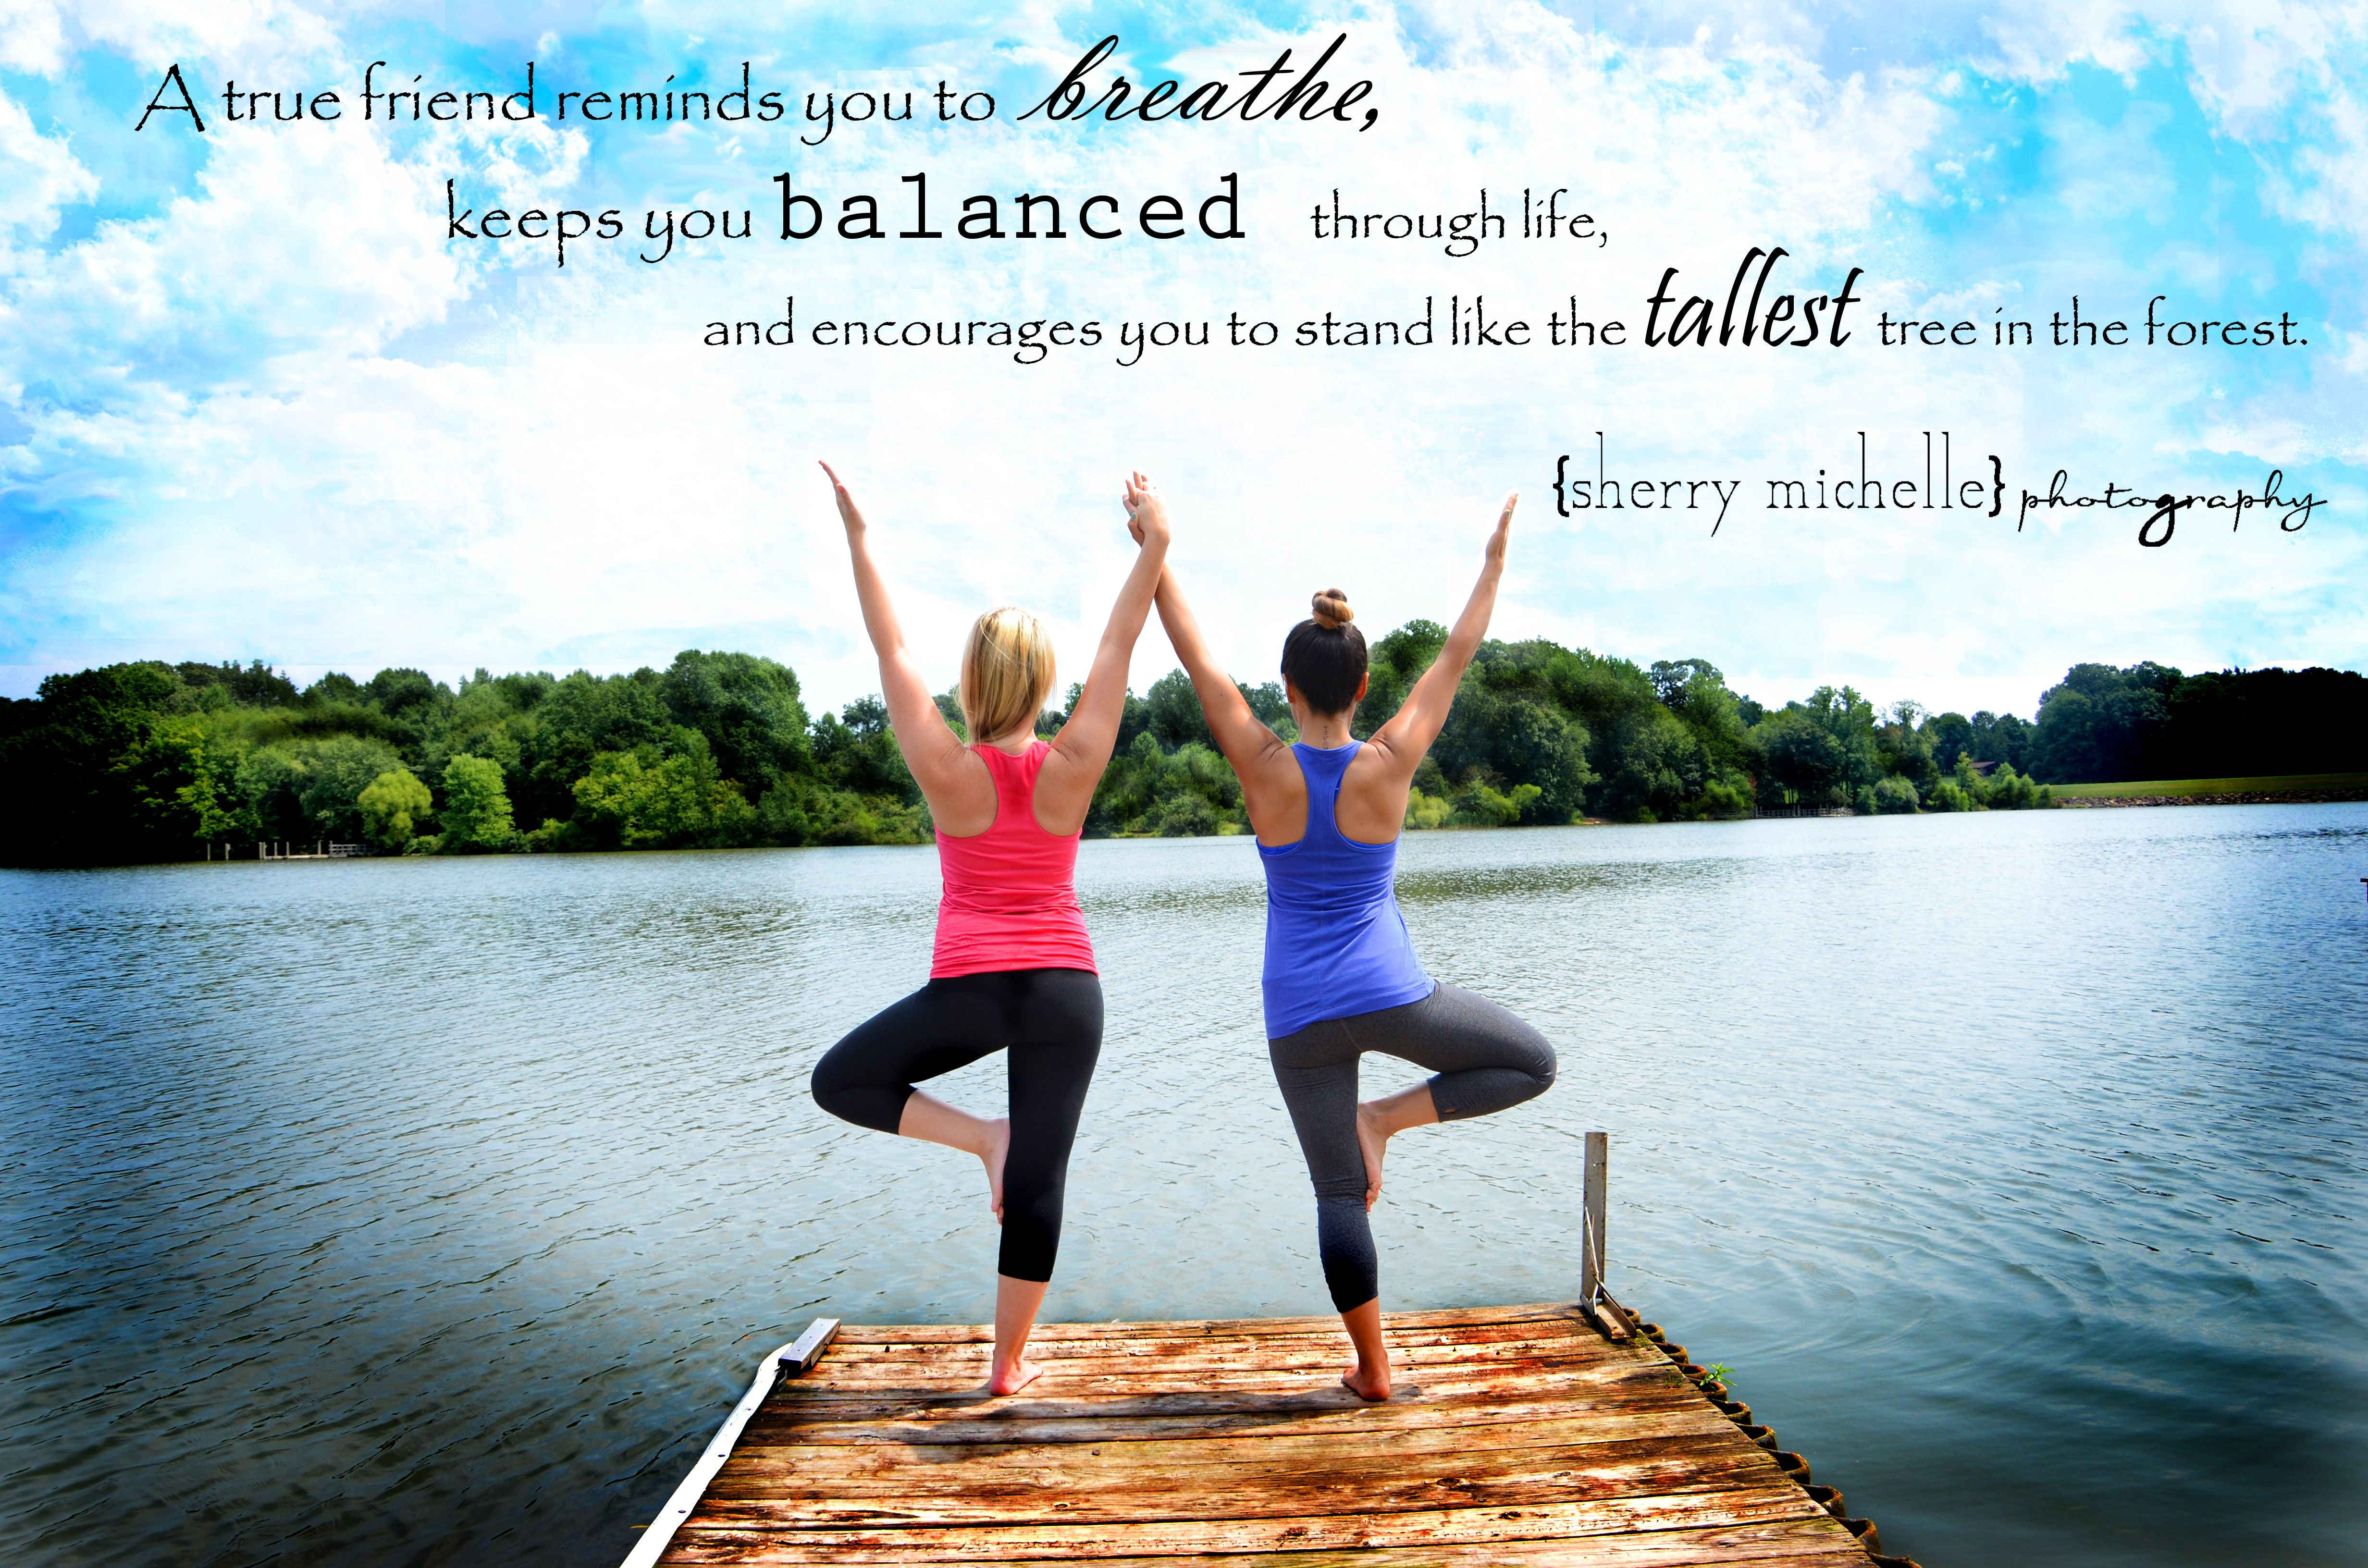 Friendship Quotes Yoga Quotes Girlfriends True Friends Sherrymichellephotography Sherry Michelle Photography Best Yoga Friends Yoga Quotes Friends Quotes